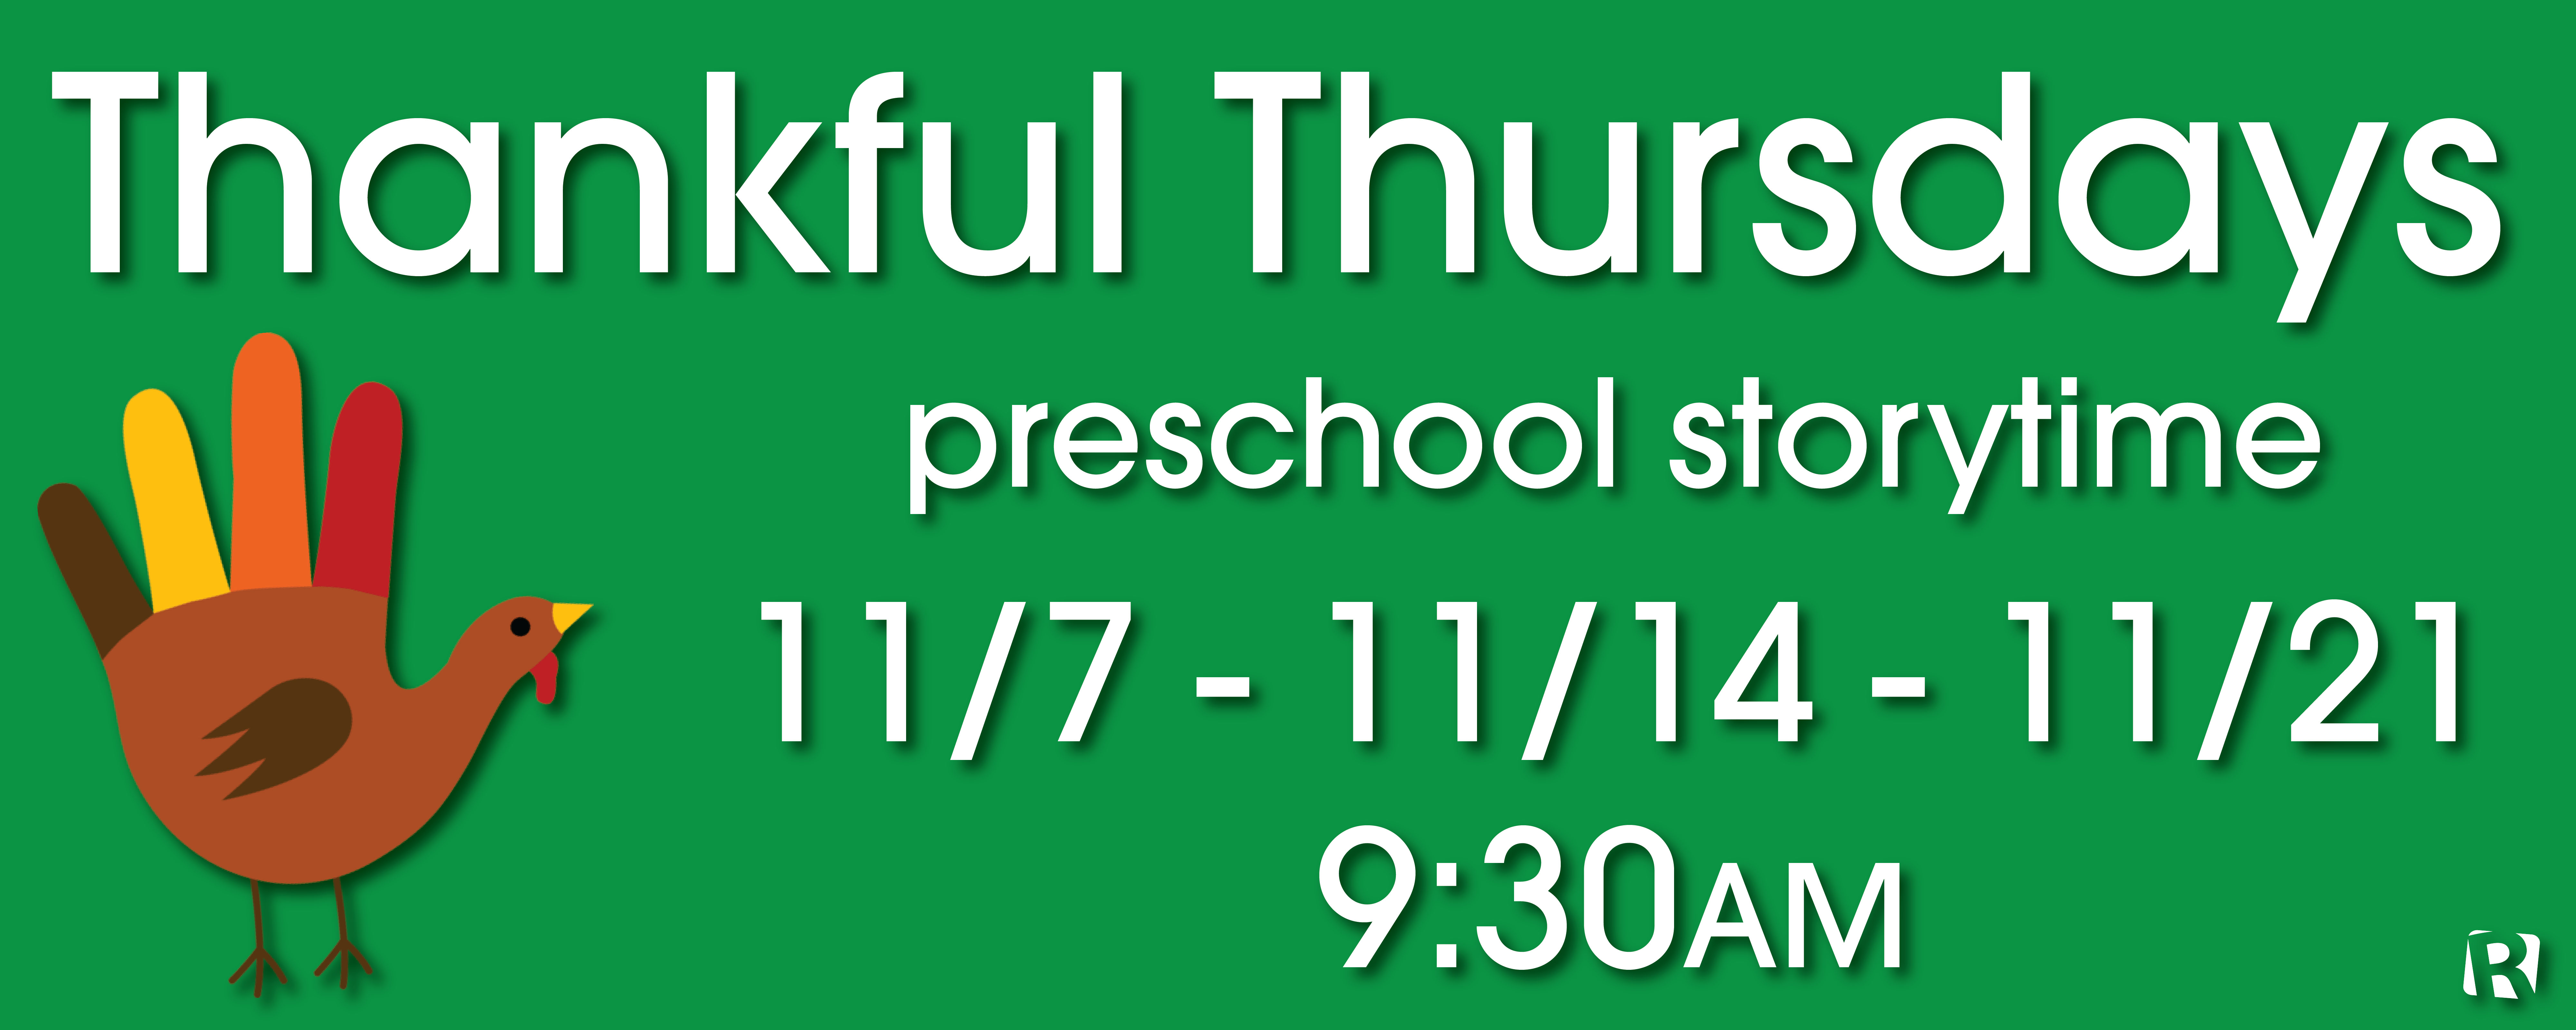 Thankful Thursdays digital sign-01